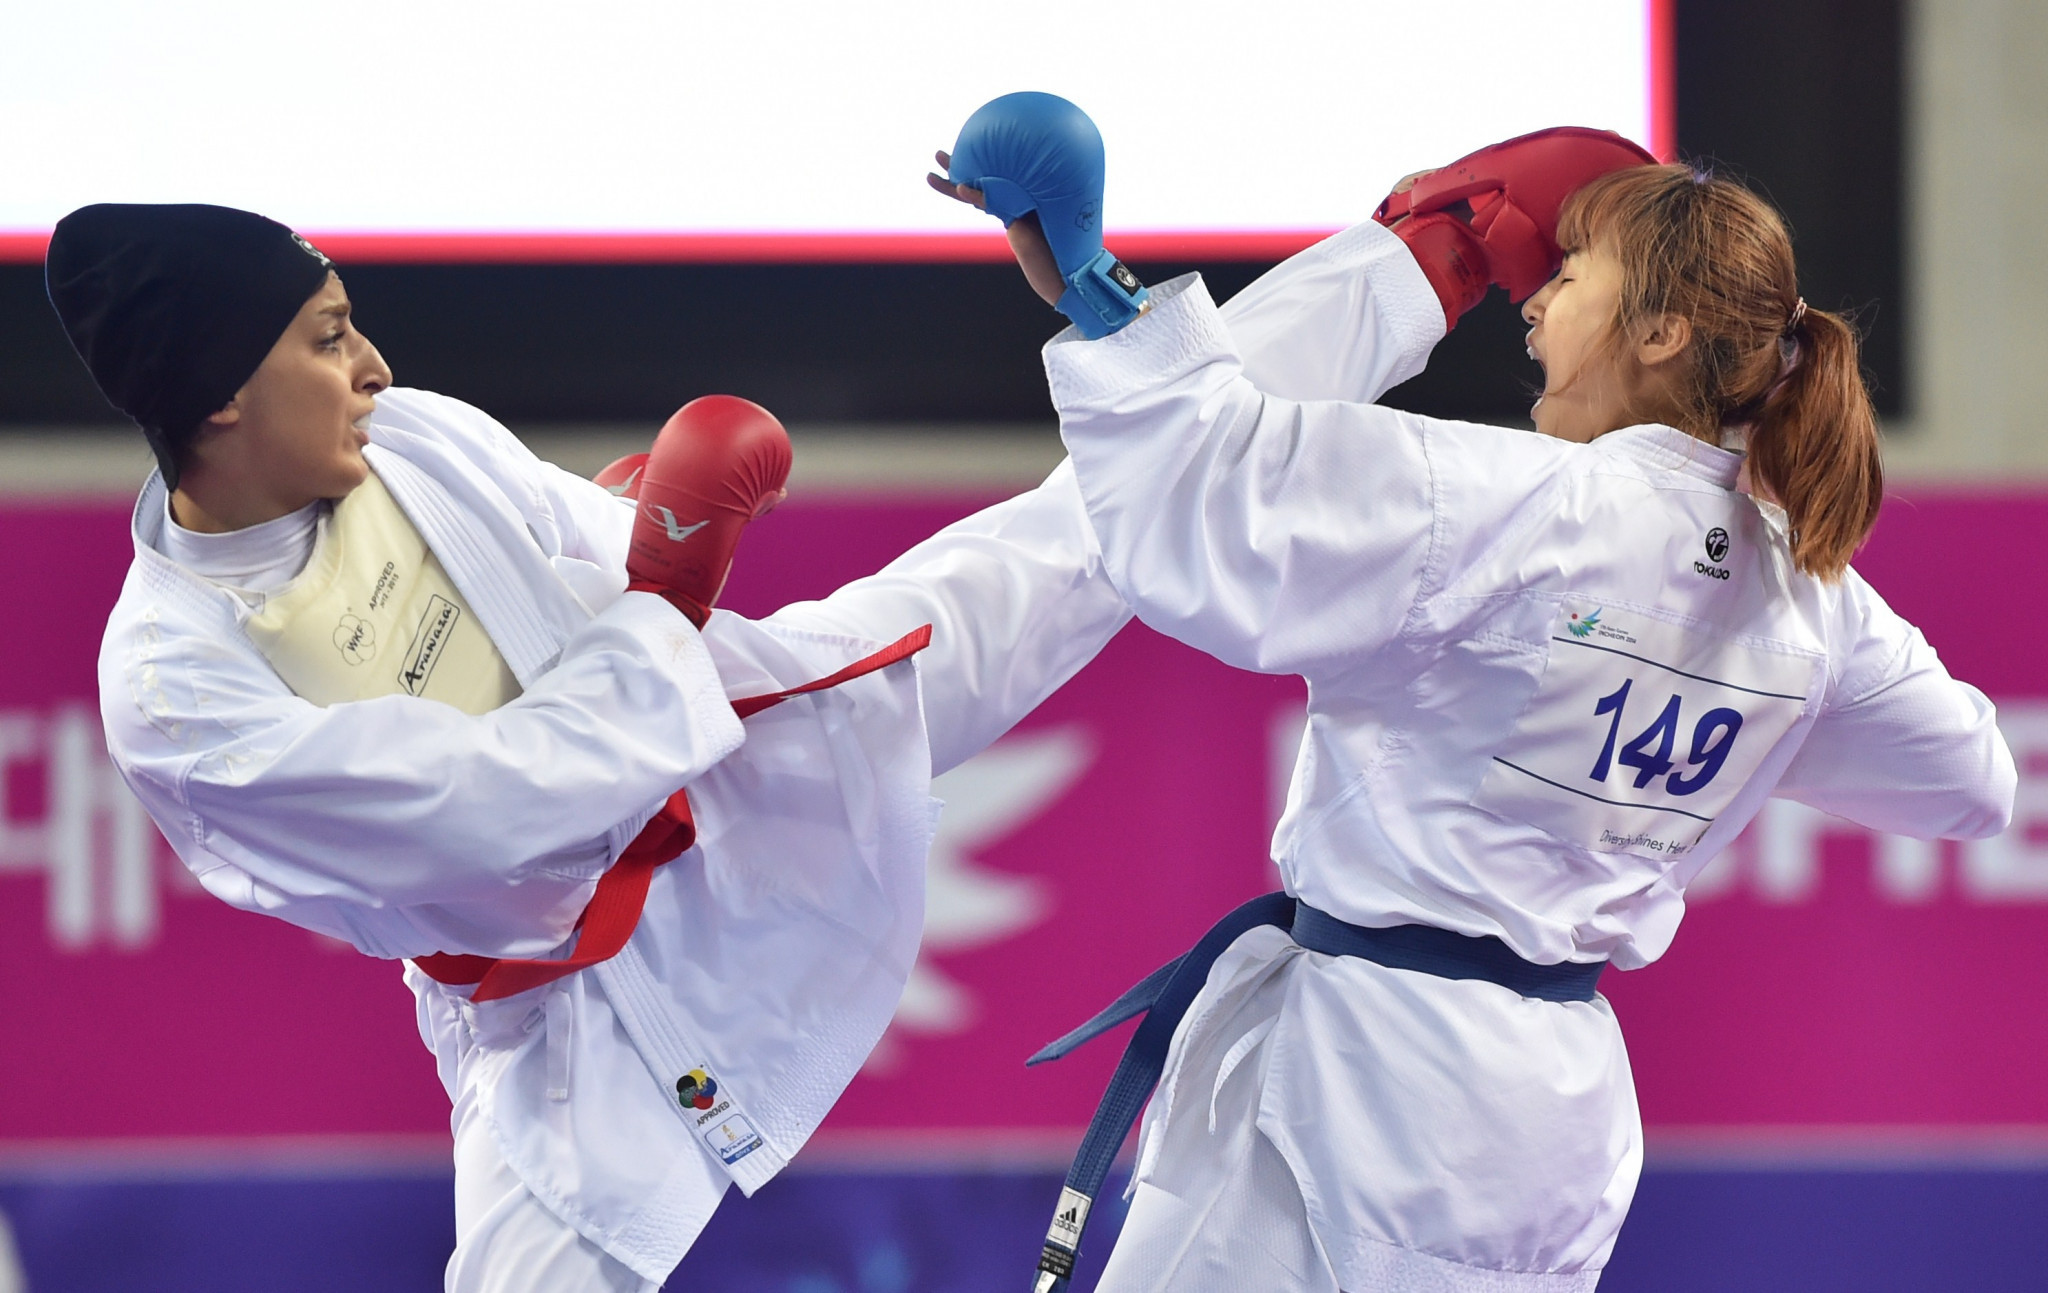 Iran's Fatemeh Chalaki, left, was among the gold medallists on the final day ©Getty Images